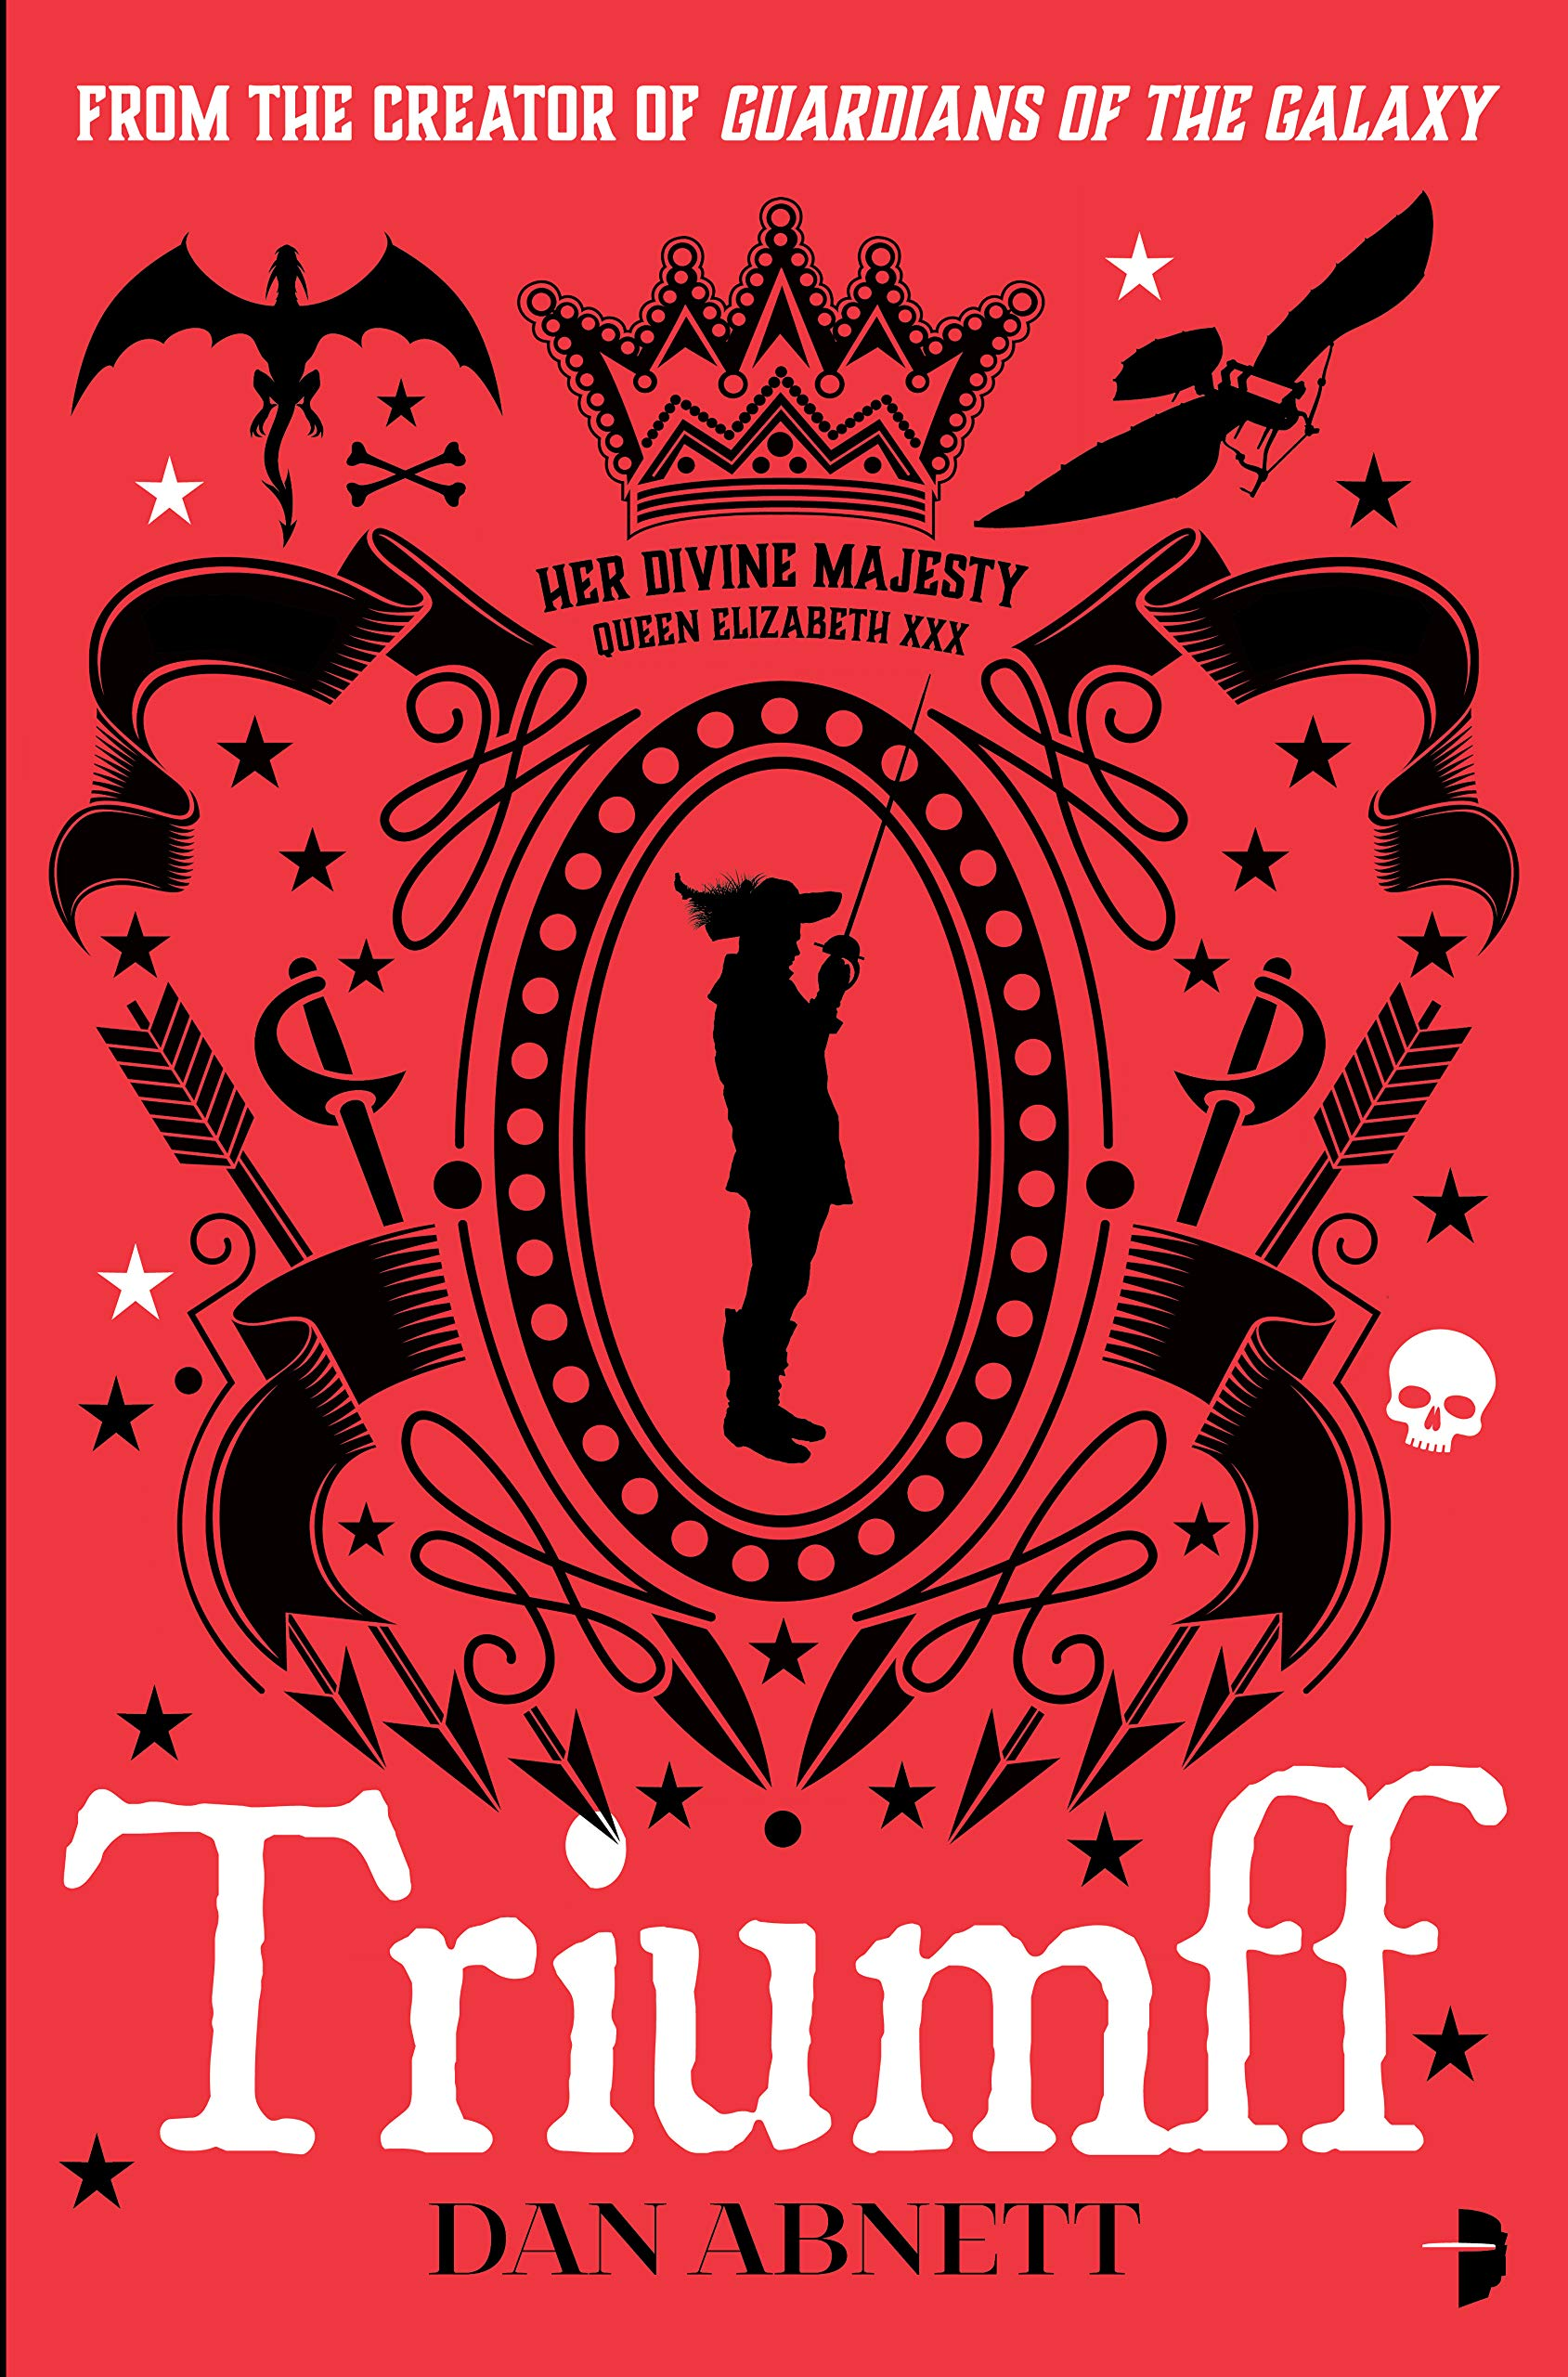 Triumff: Amazon.co.uk: Dan Abnett: 9780857668691: Books